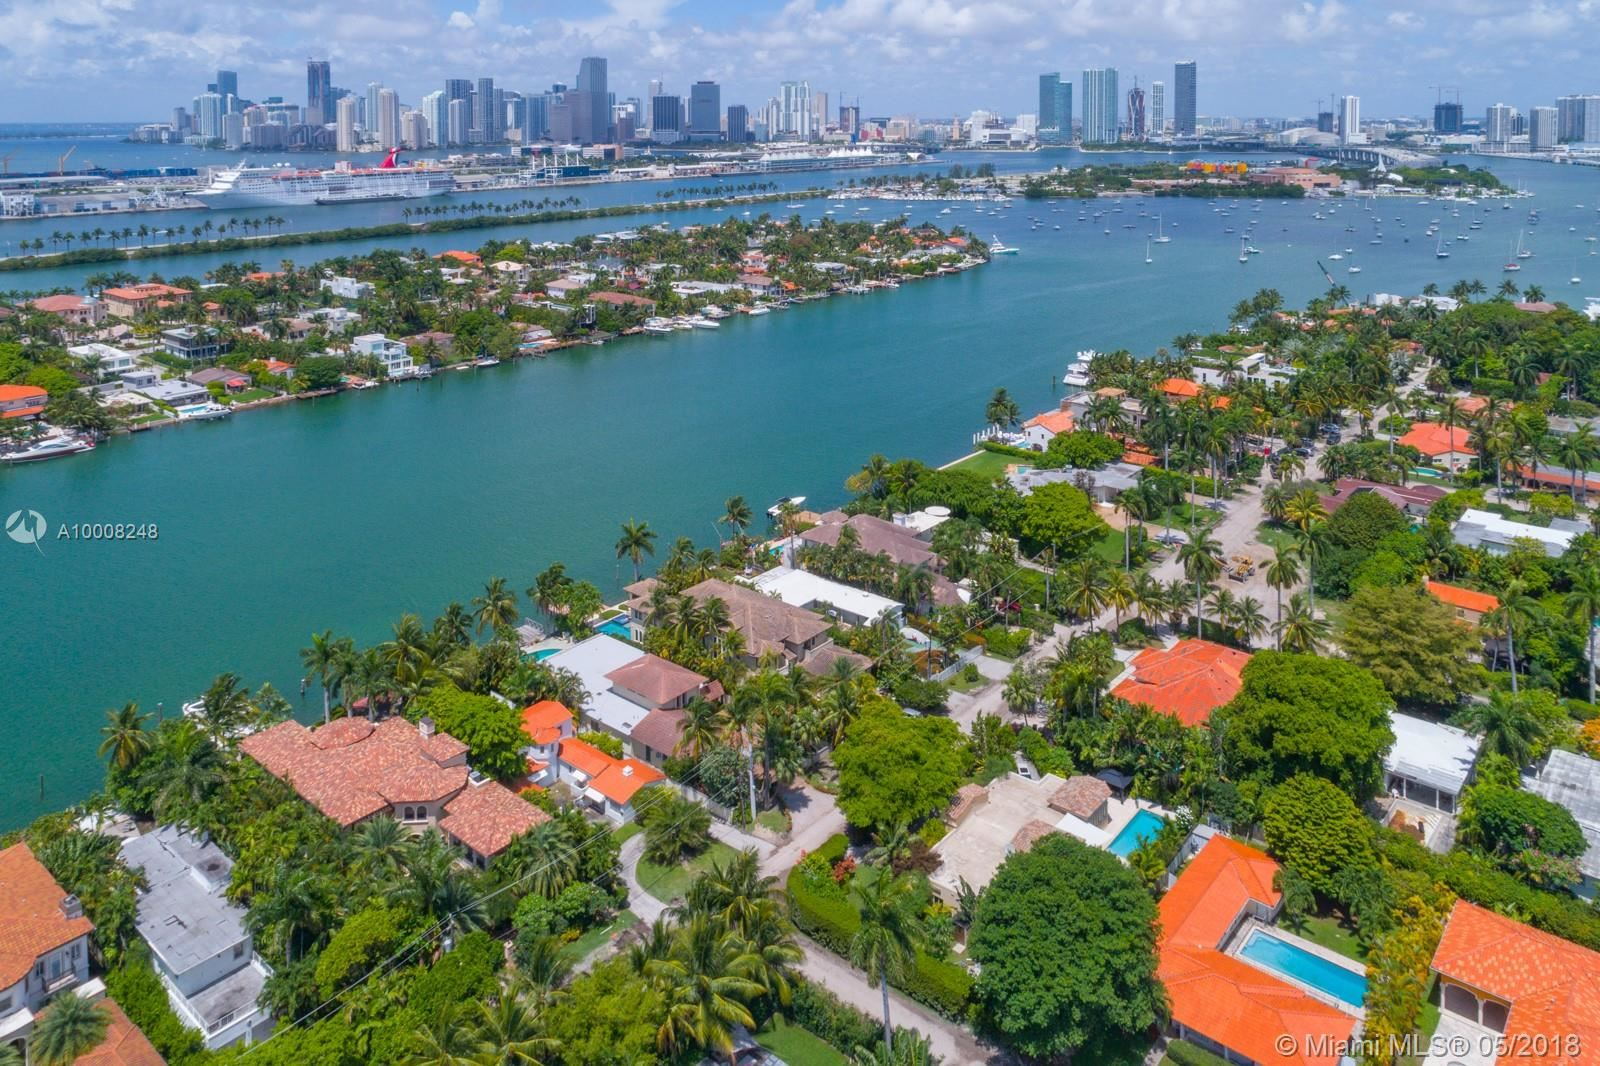 Photo 23 of Listing MLS a10008248 in 280 S HIBISCUS DR Miami Beach FL 33139